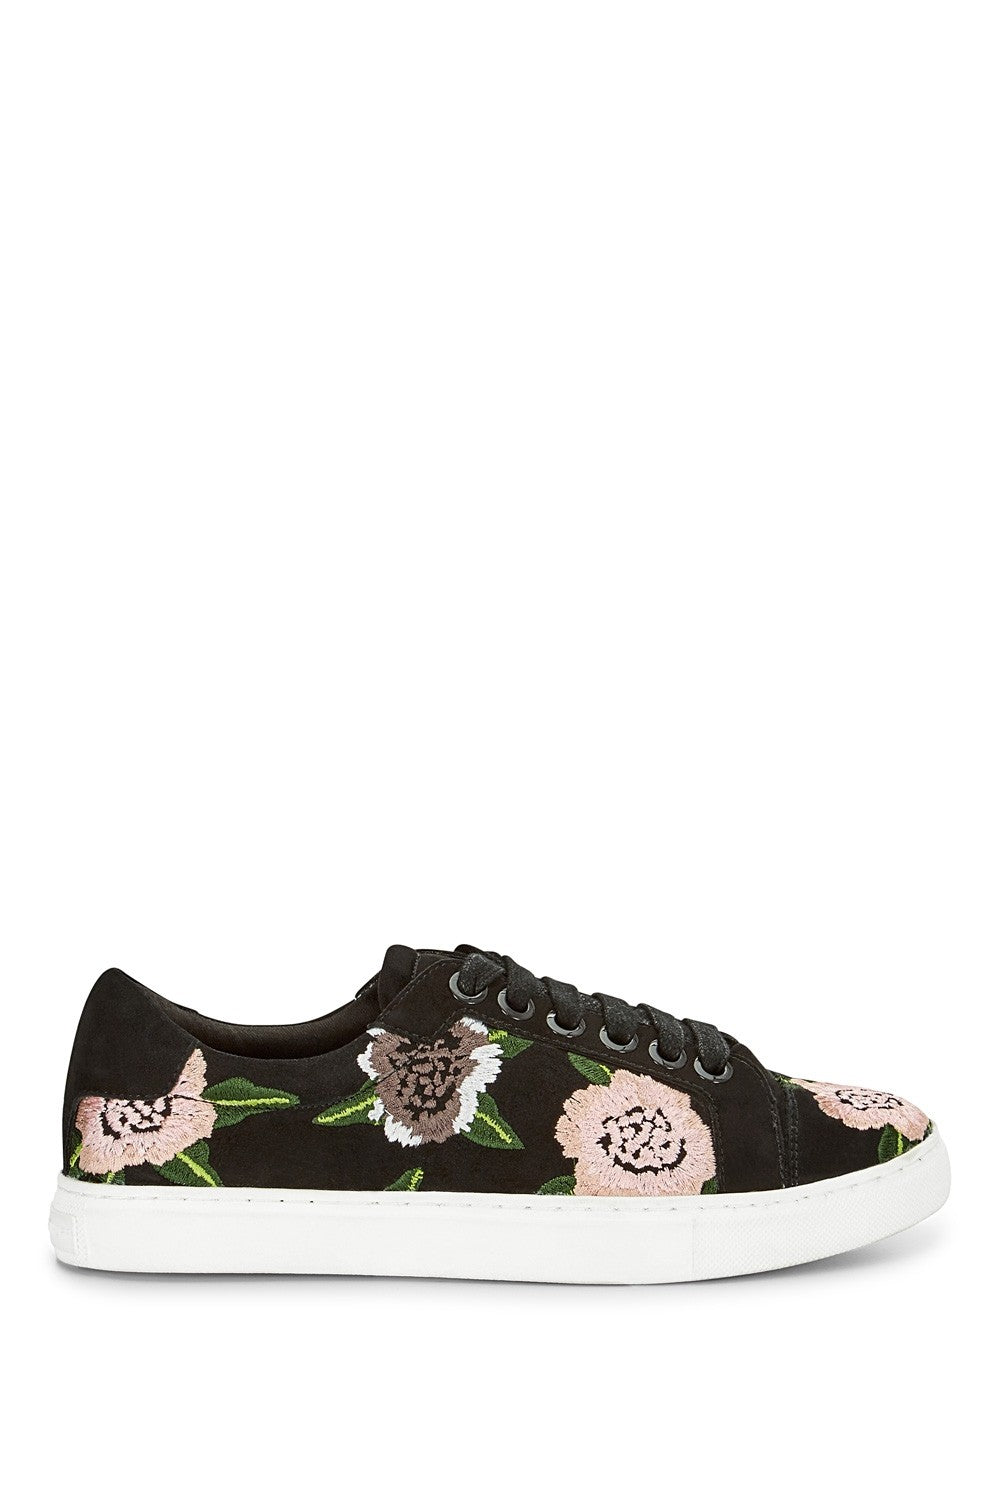 Rebecca Minkoff Bleecker Floral Embroidery Sneaker in Black Suede M285040